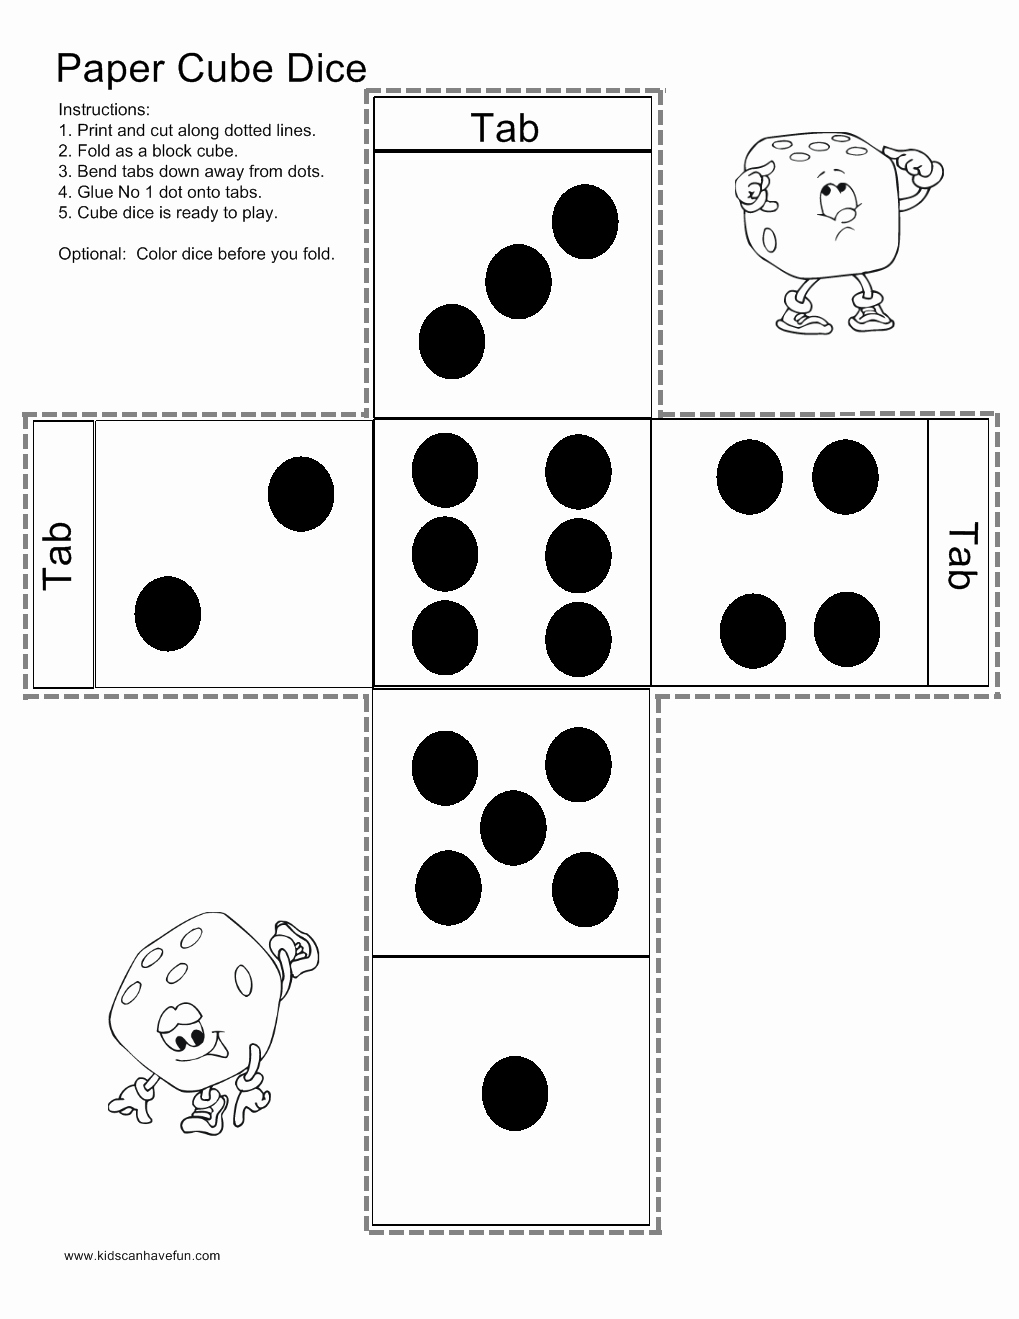 Printable Dice Template Lovely Make A Paper Cube Dice